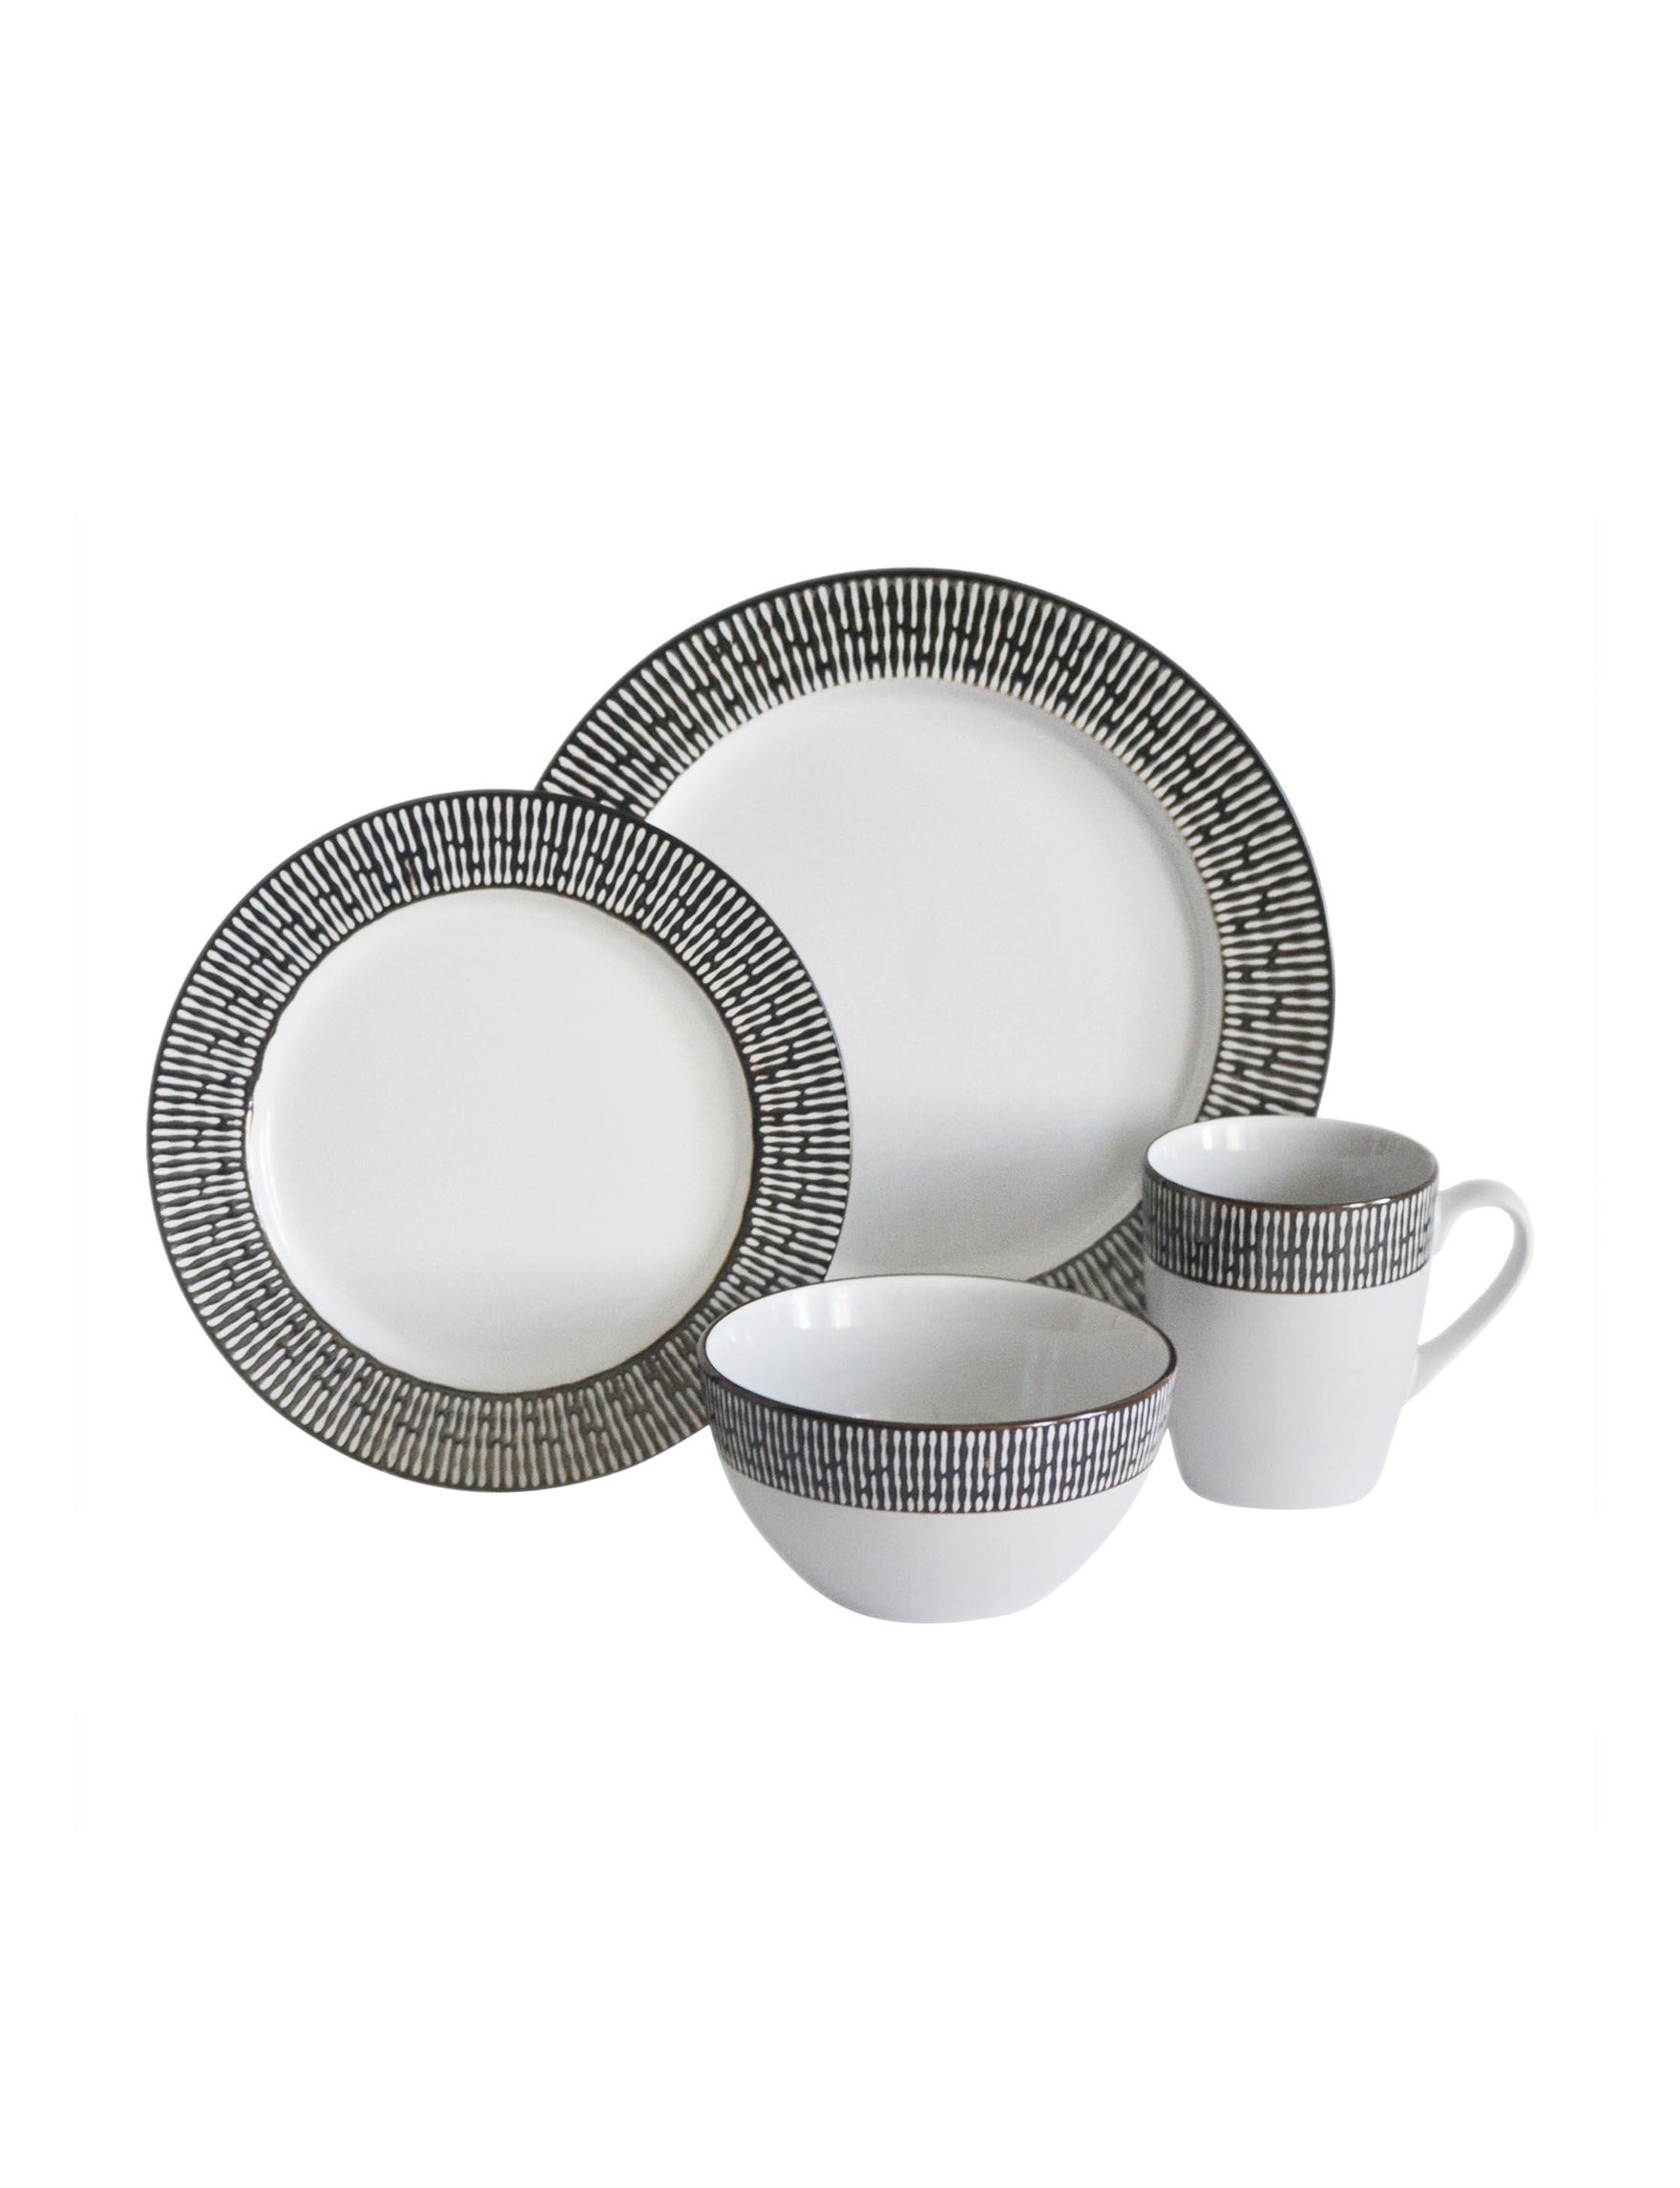 Baum Bros Imports 16-pc. Patina Dinnerware Set | Stage Stores